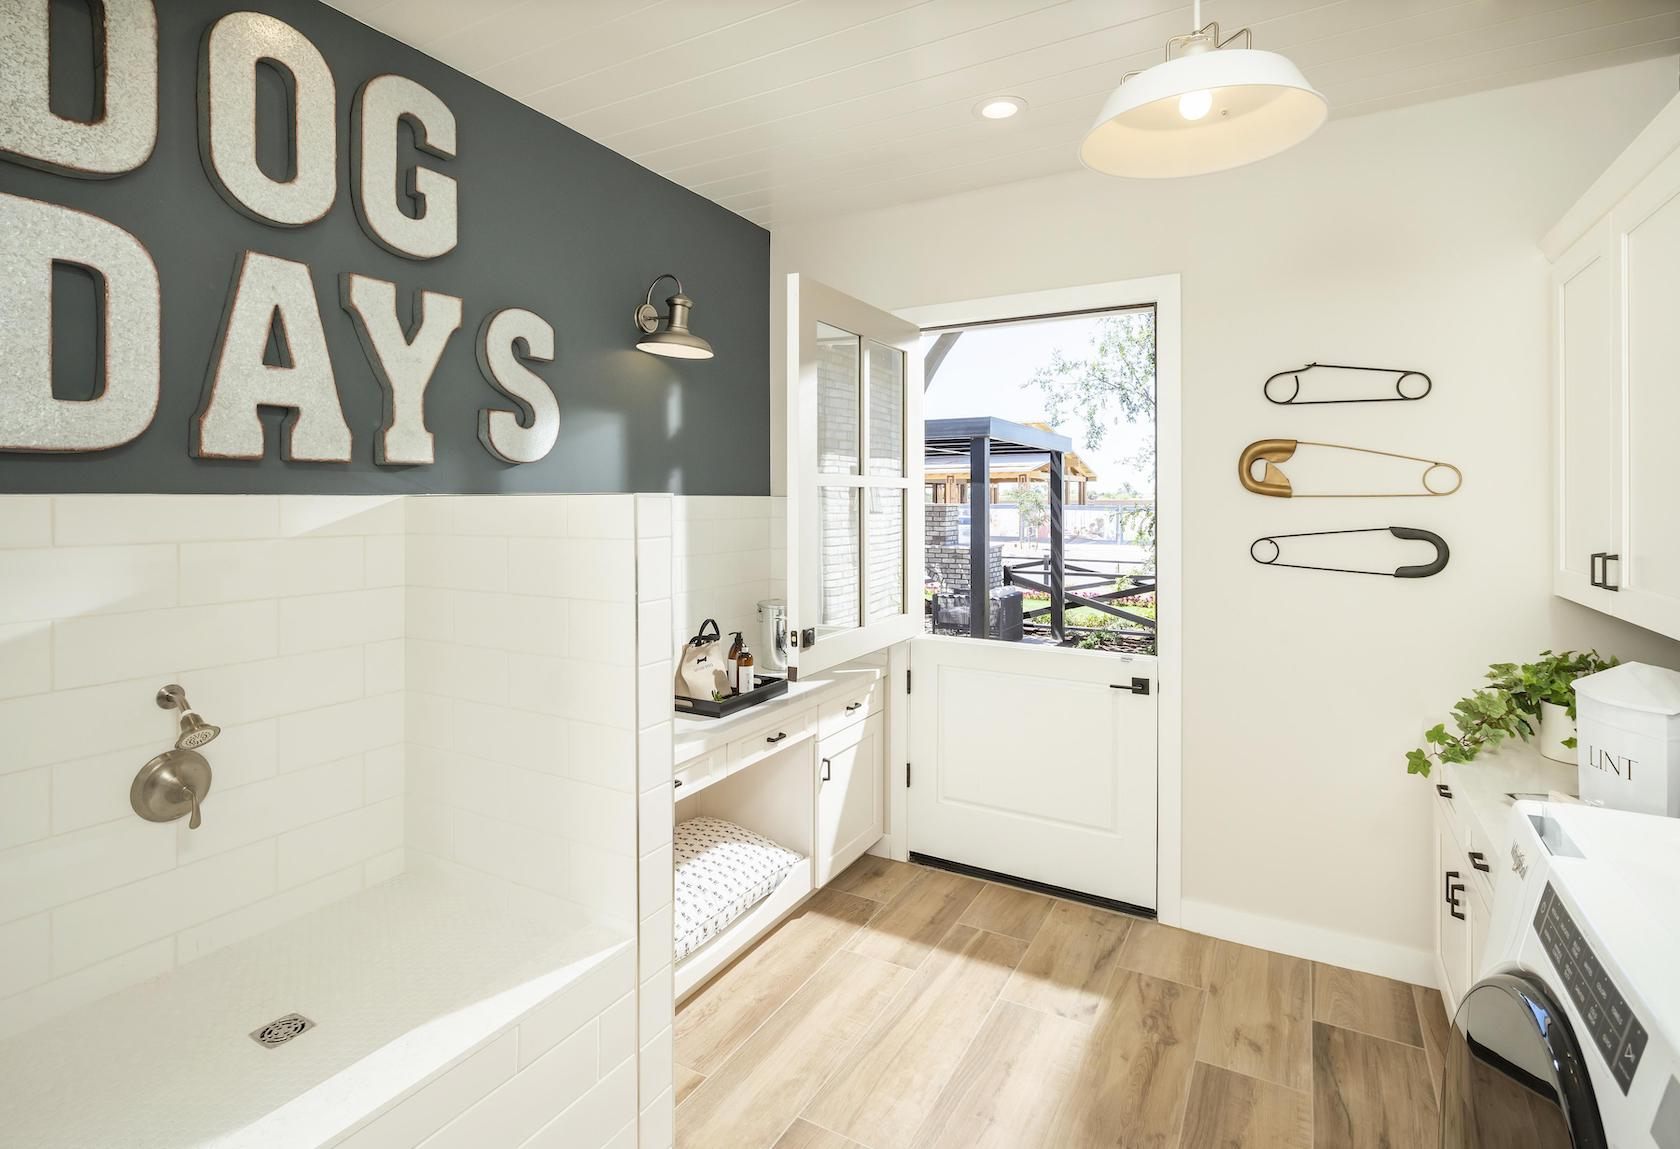 Laundry room with dog bed and shower.